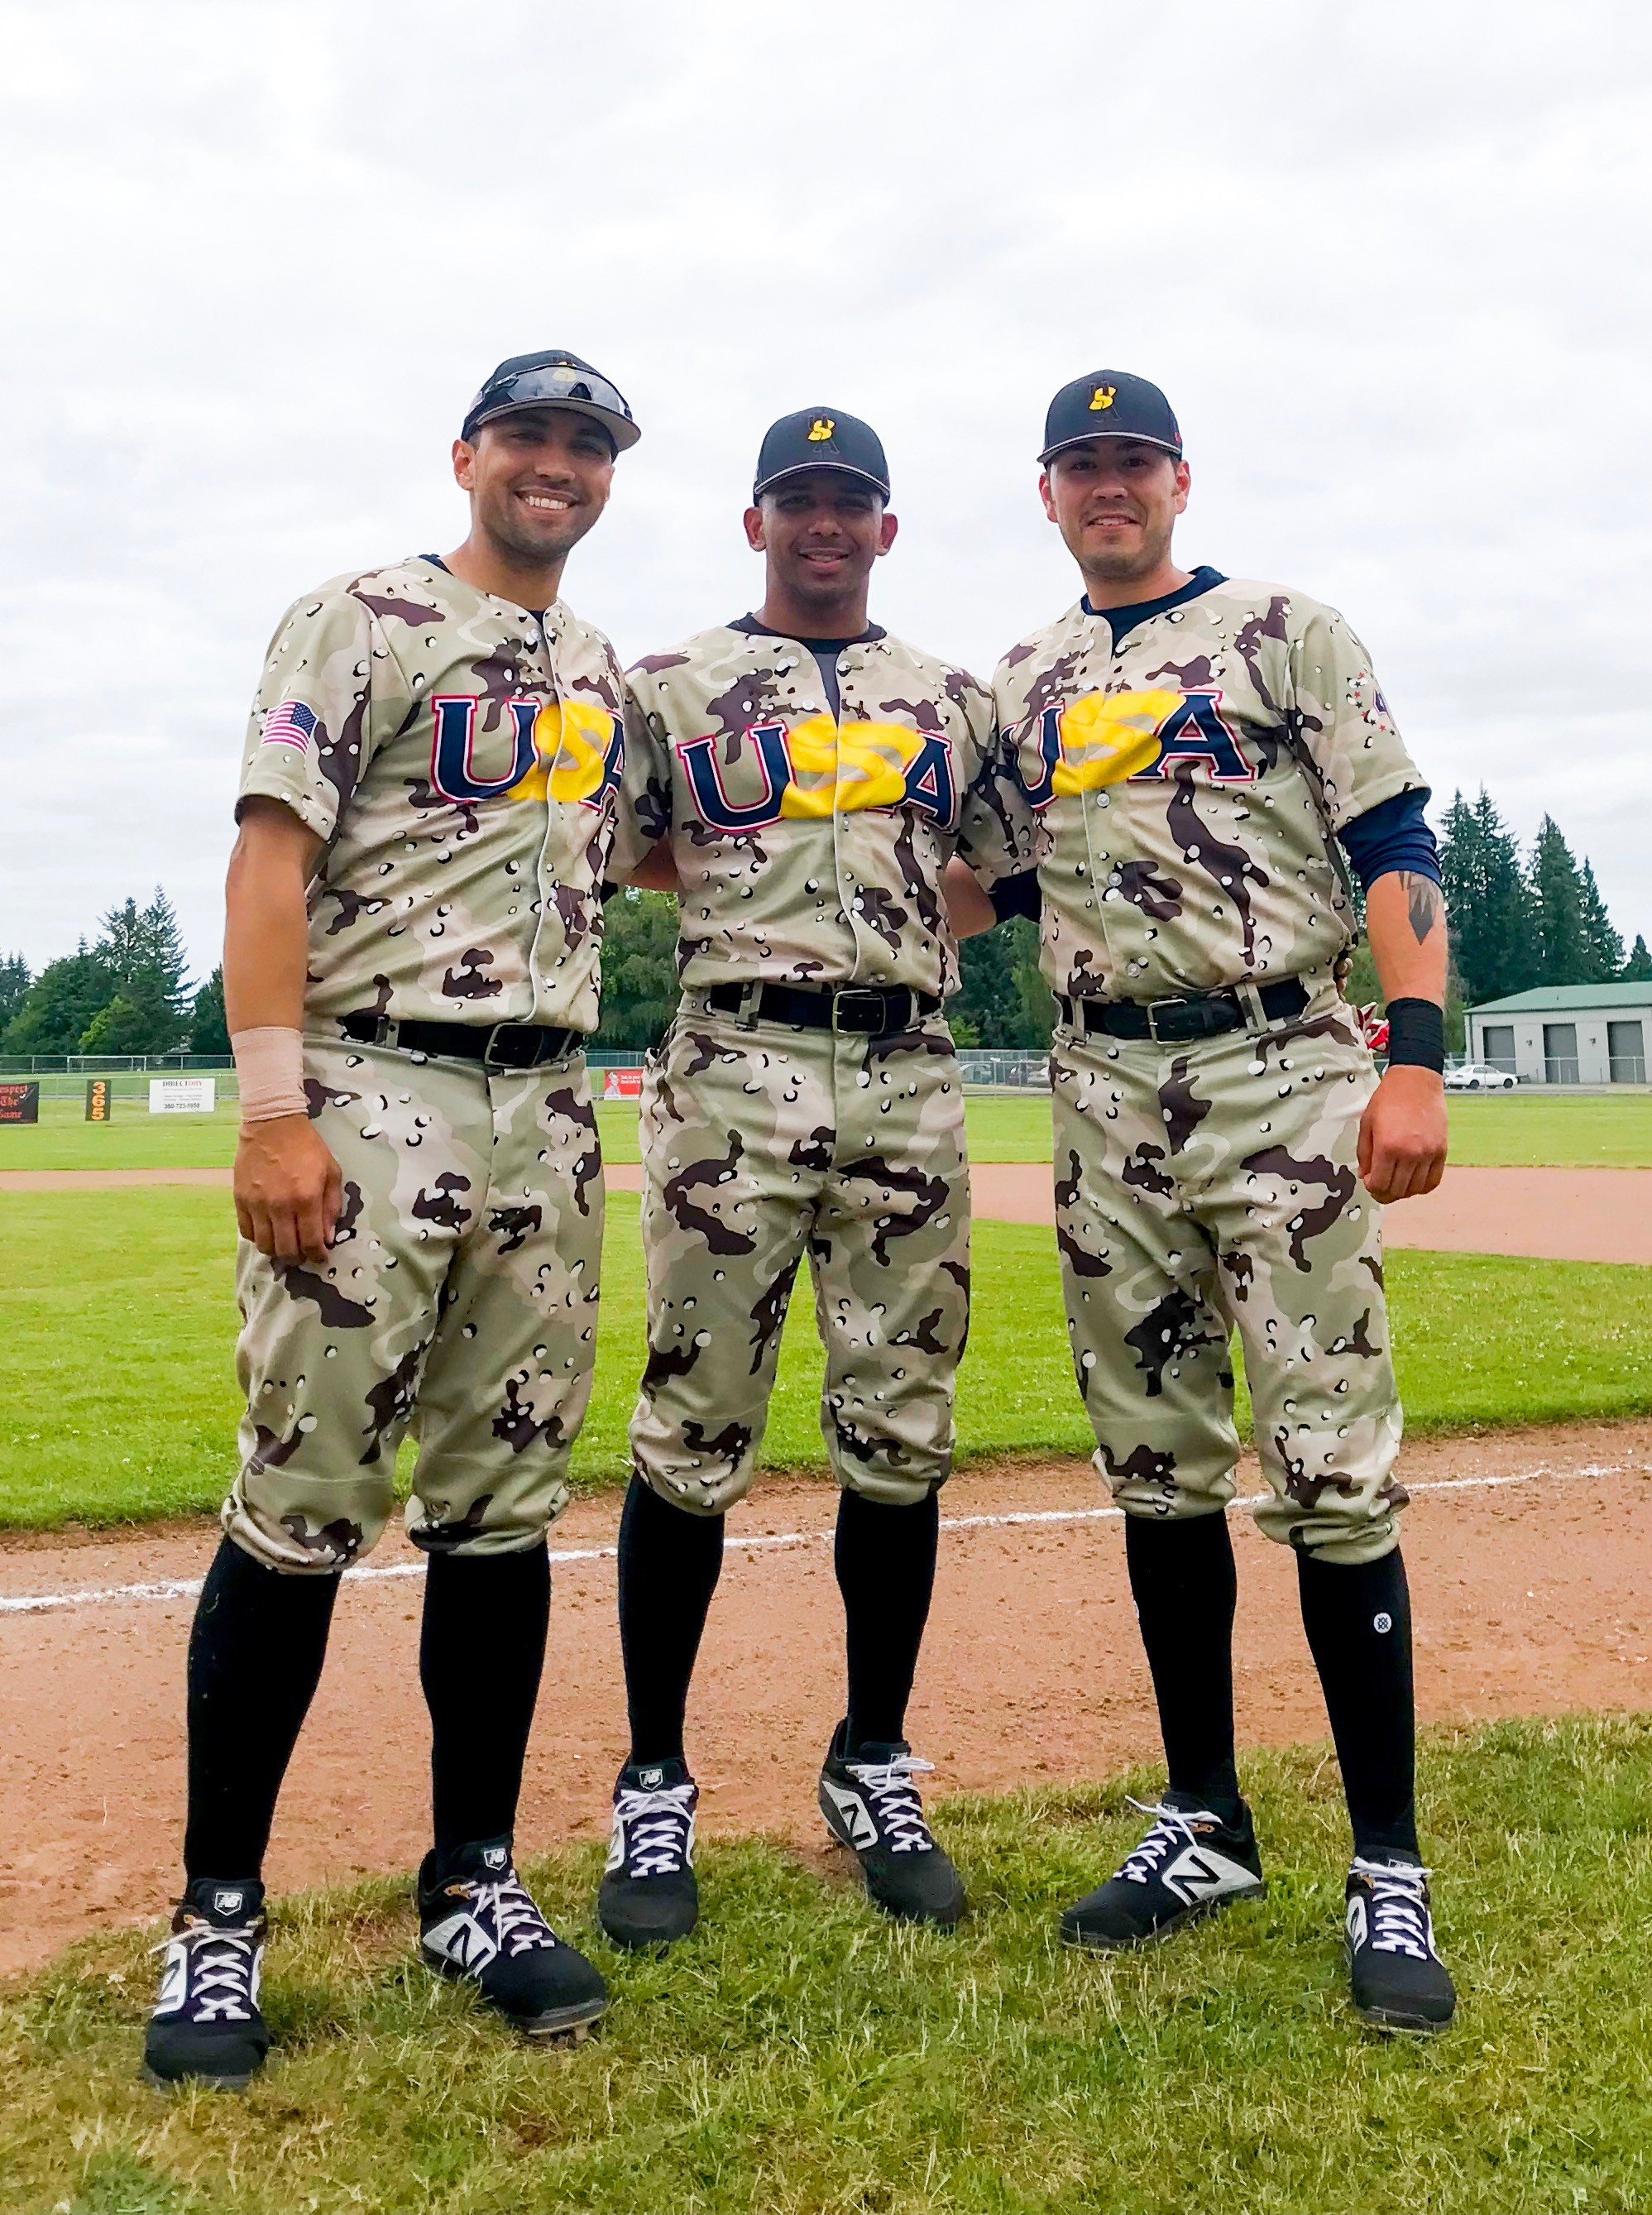 3 new players showing off our new uniforms